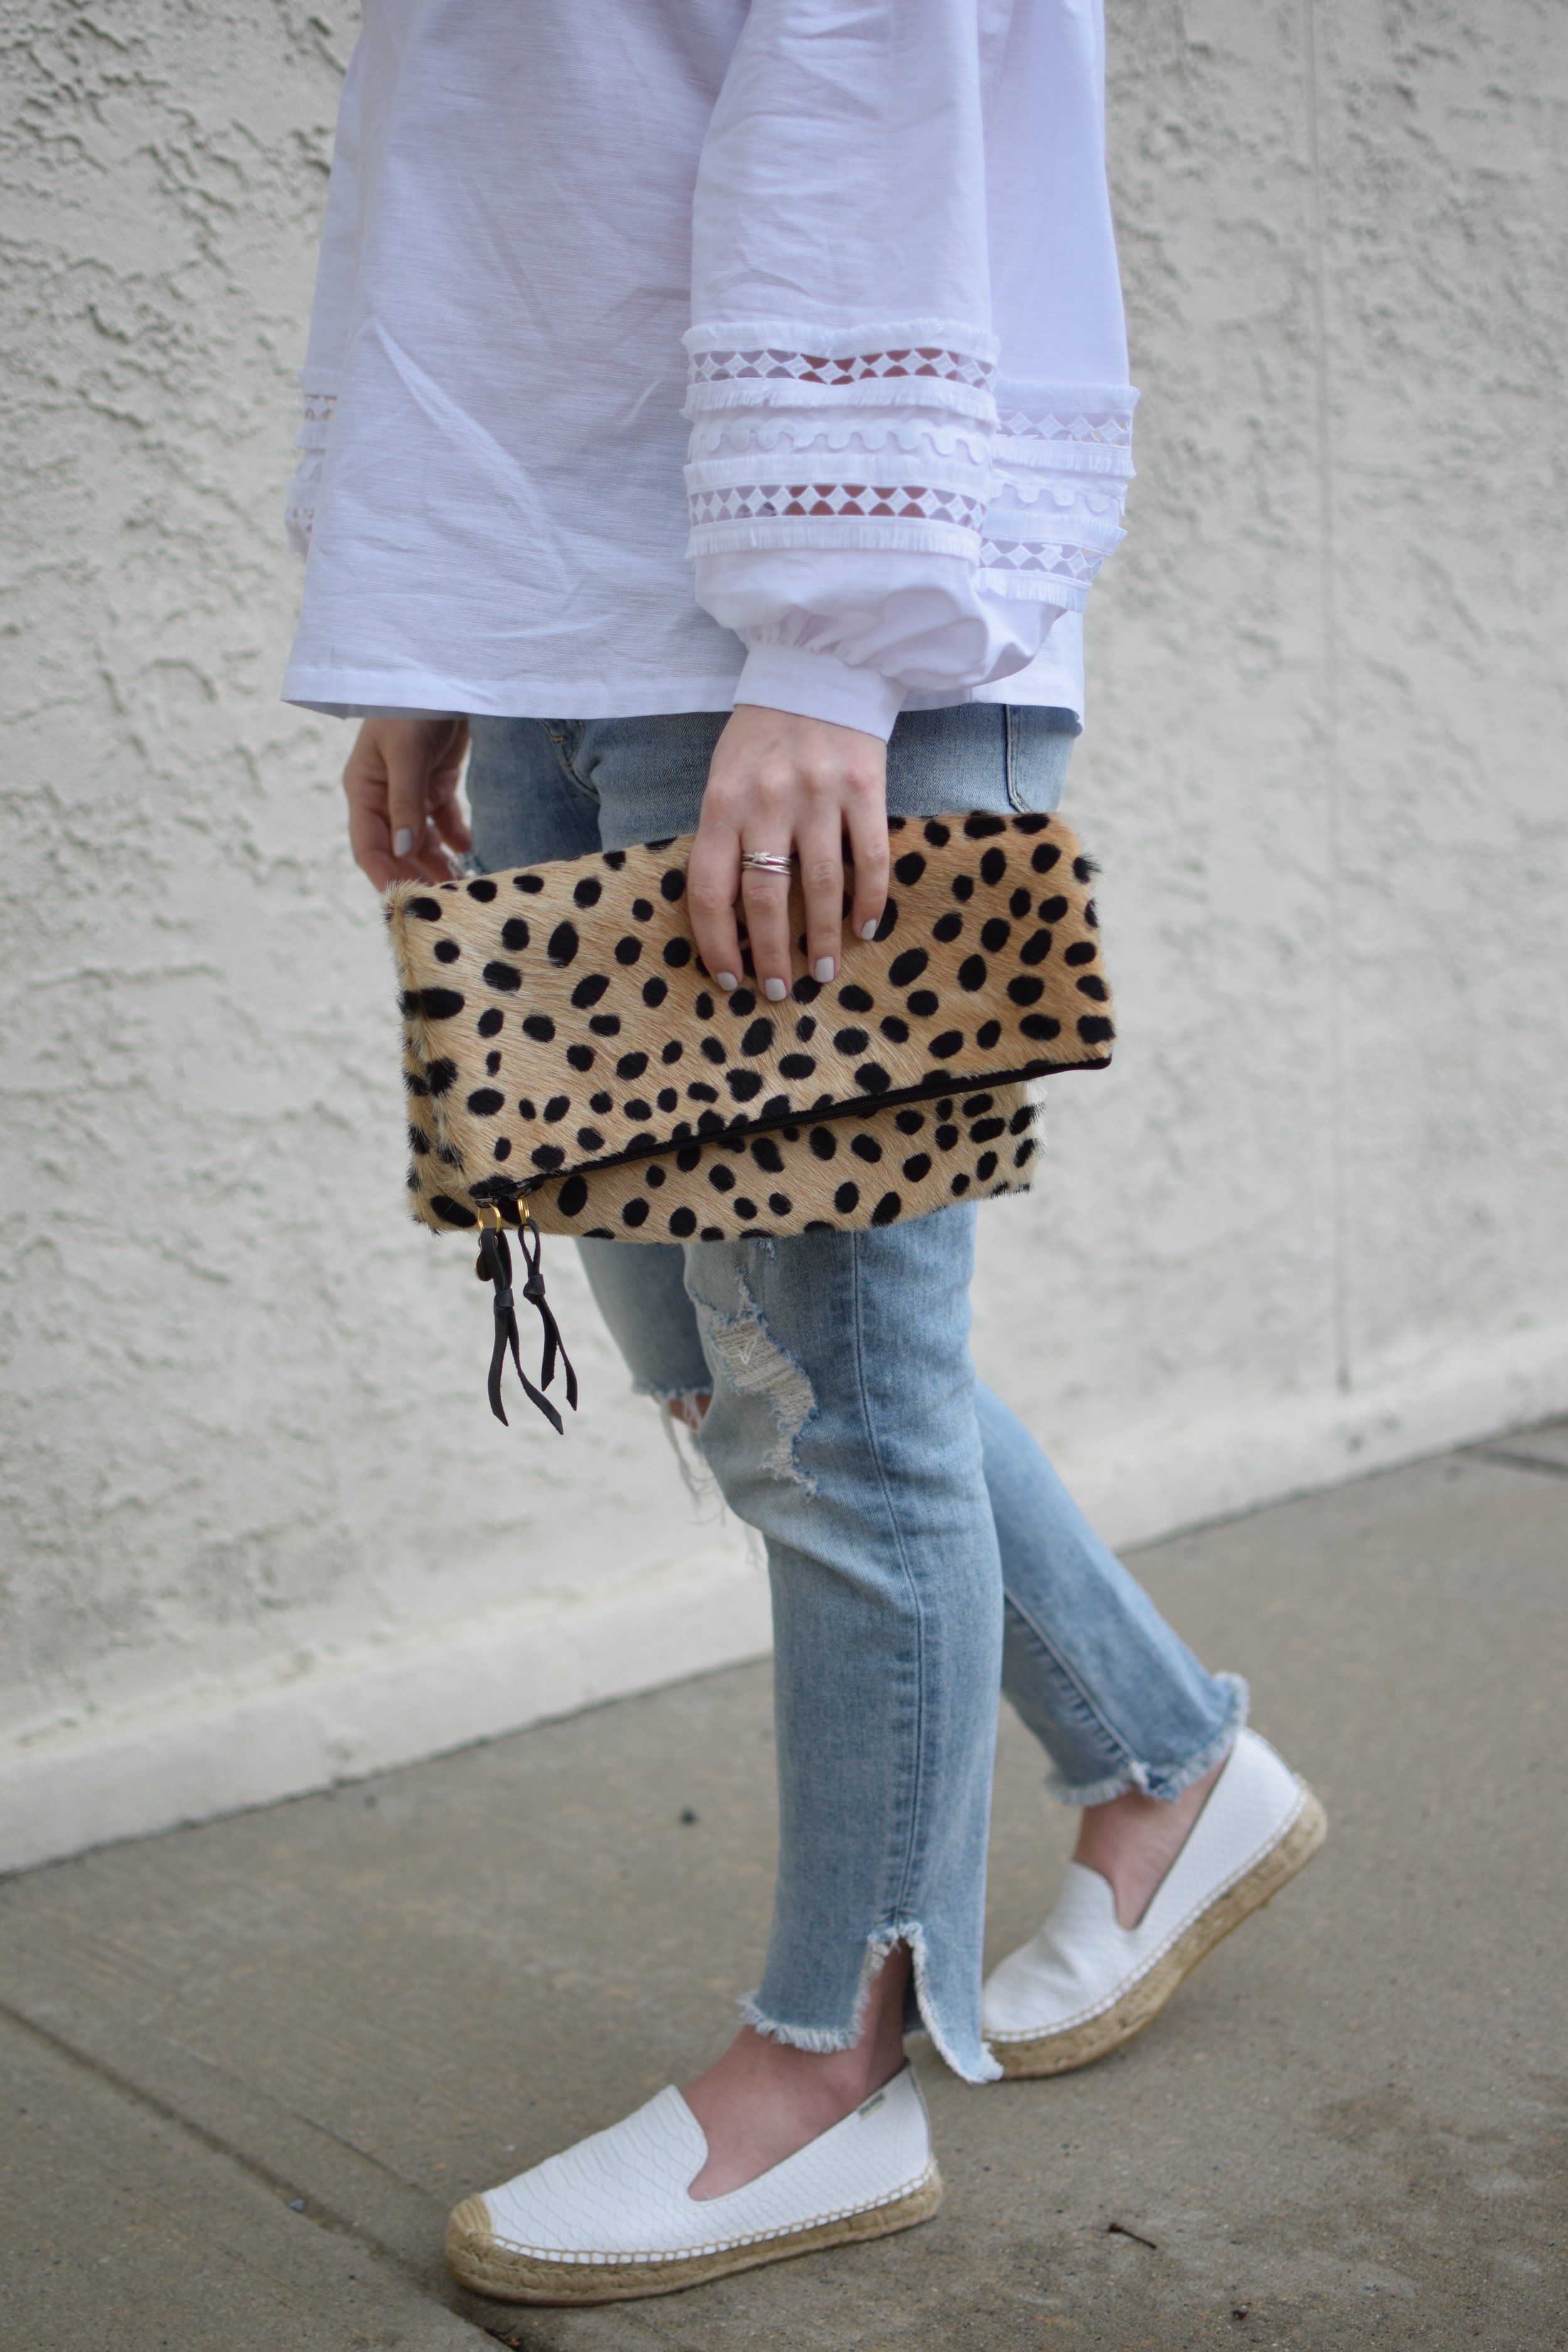 spring outfit idea / cheetah clutch